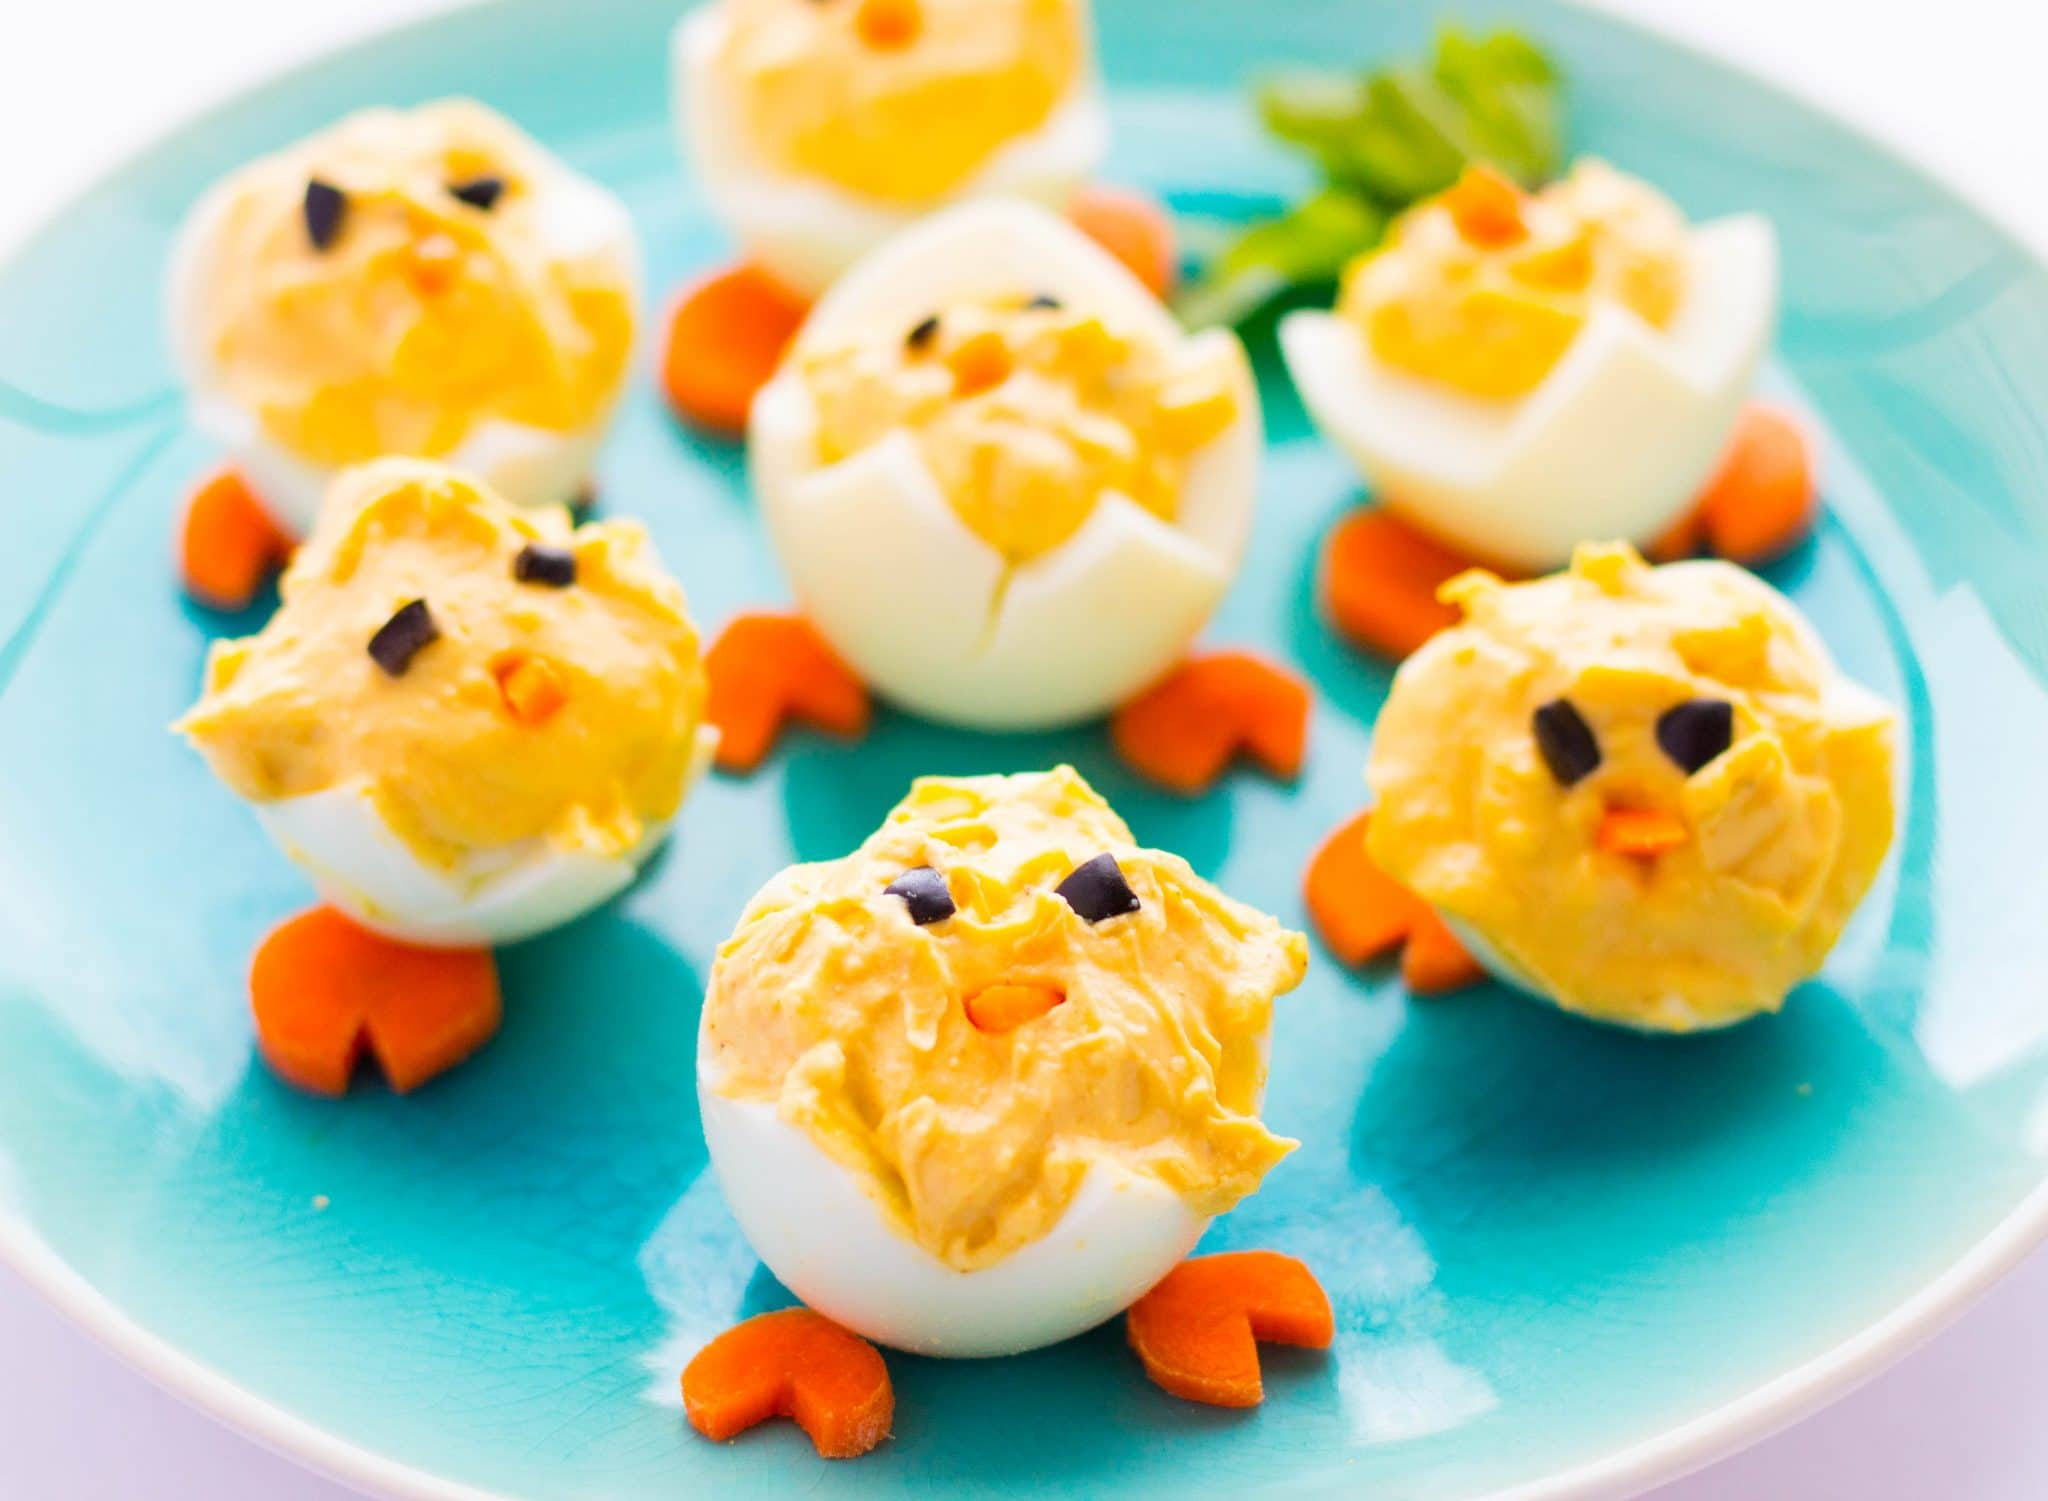 How to Make Easter Deviled Eggs Peeps Easily for your Easter brunch/dinner. This quick and easy low-carb & gluten-free appetizer to use leftover dyed eggs.